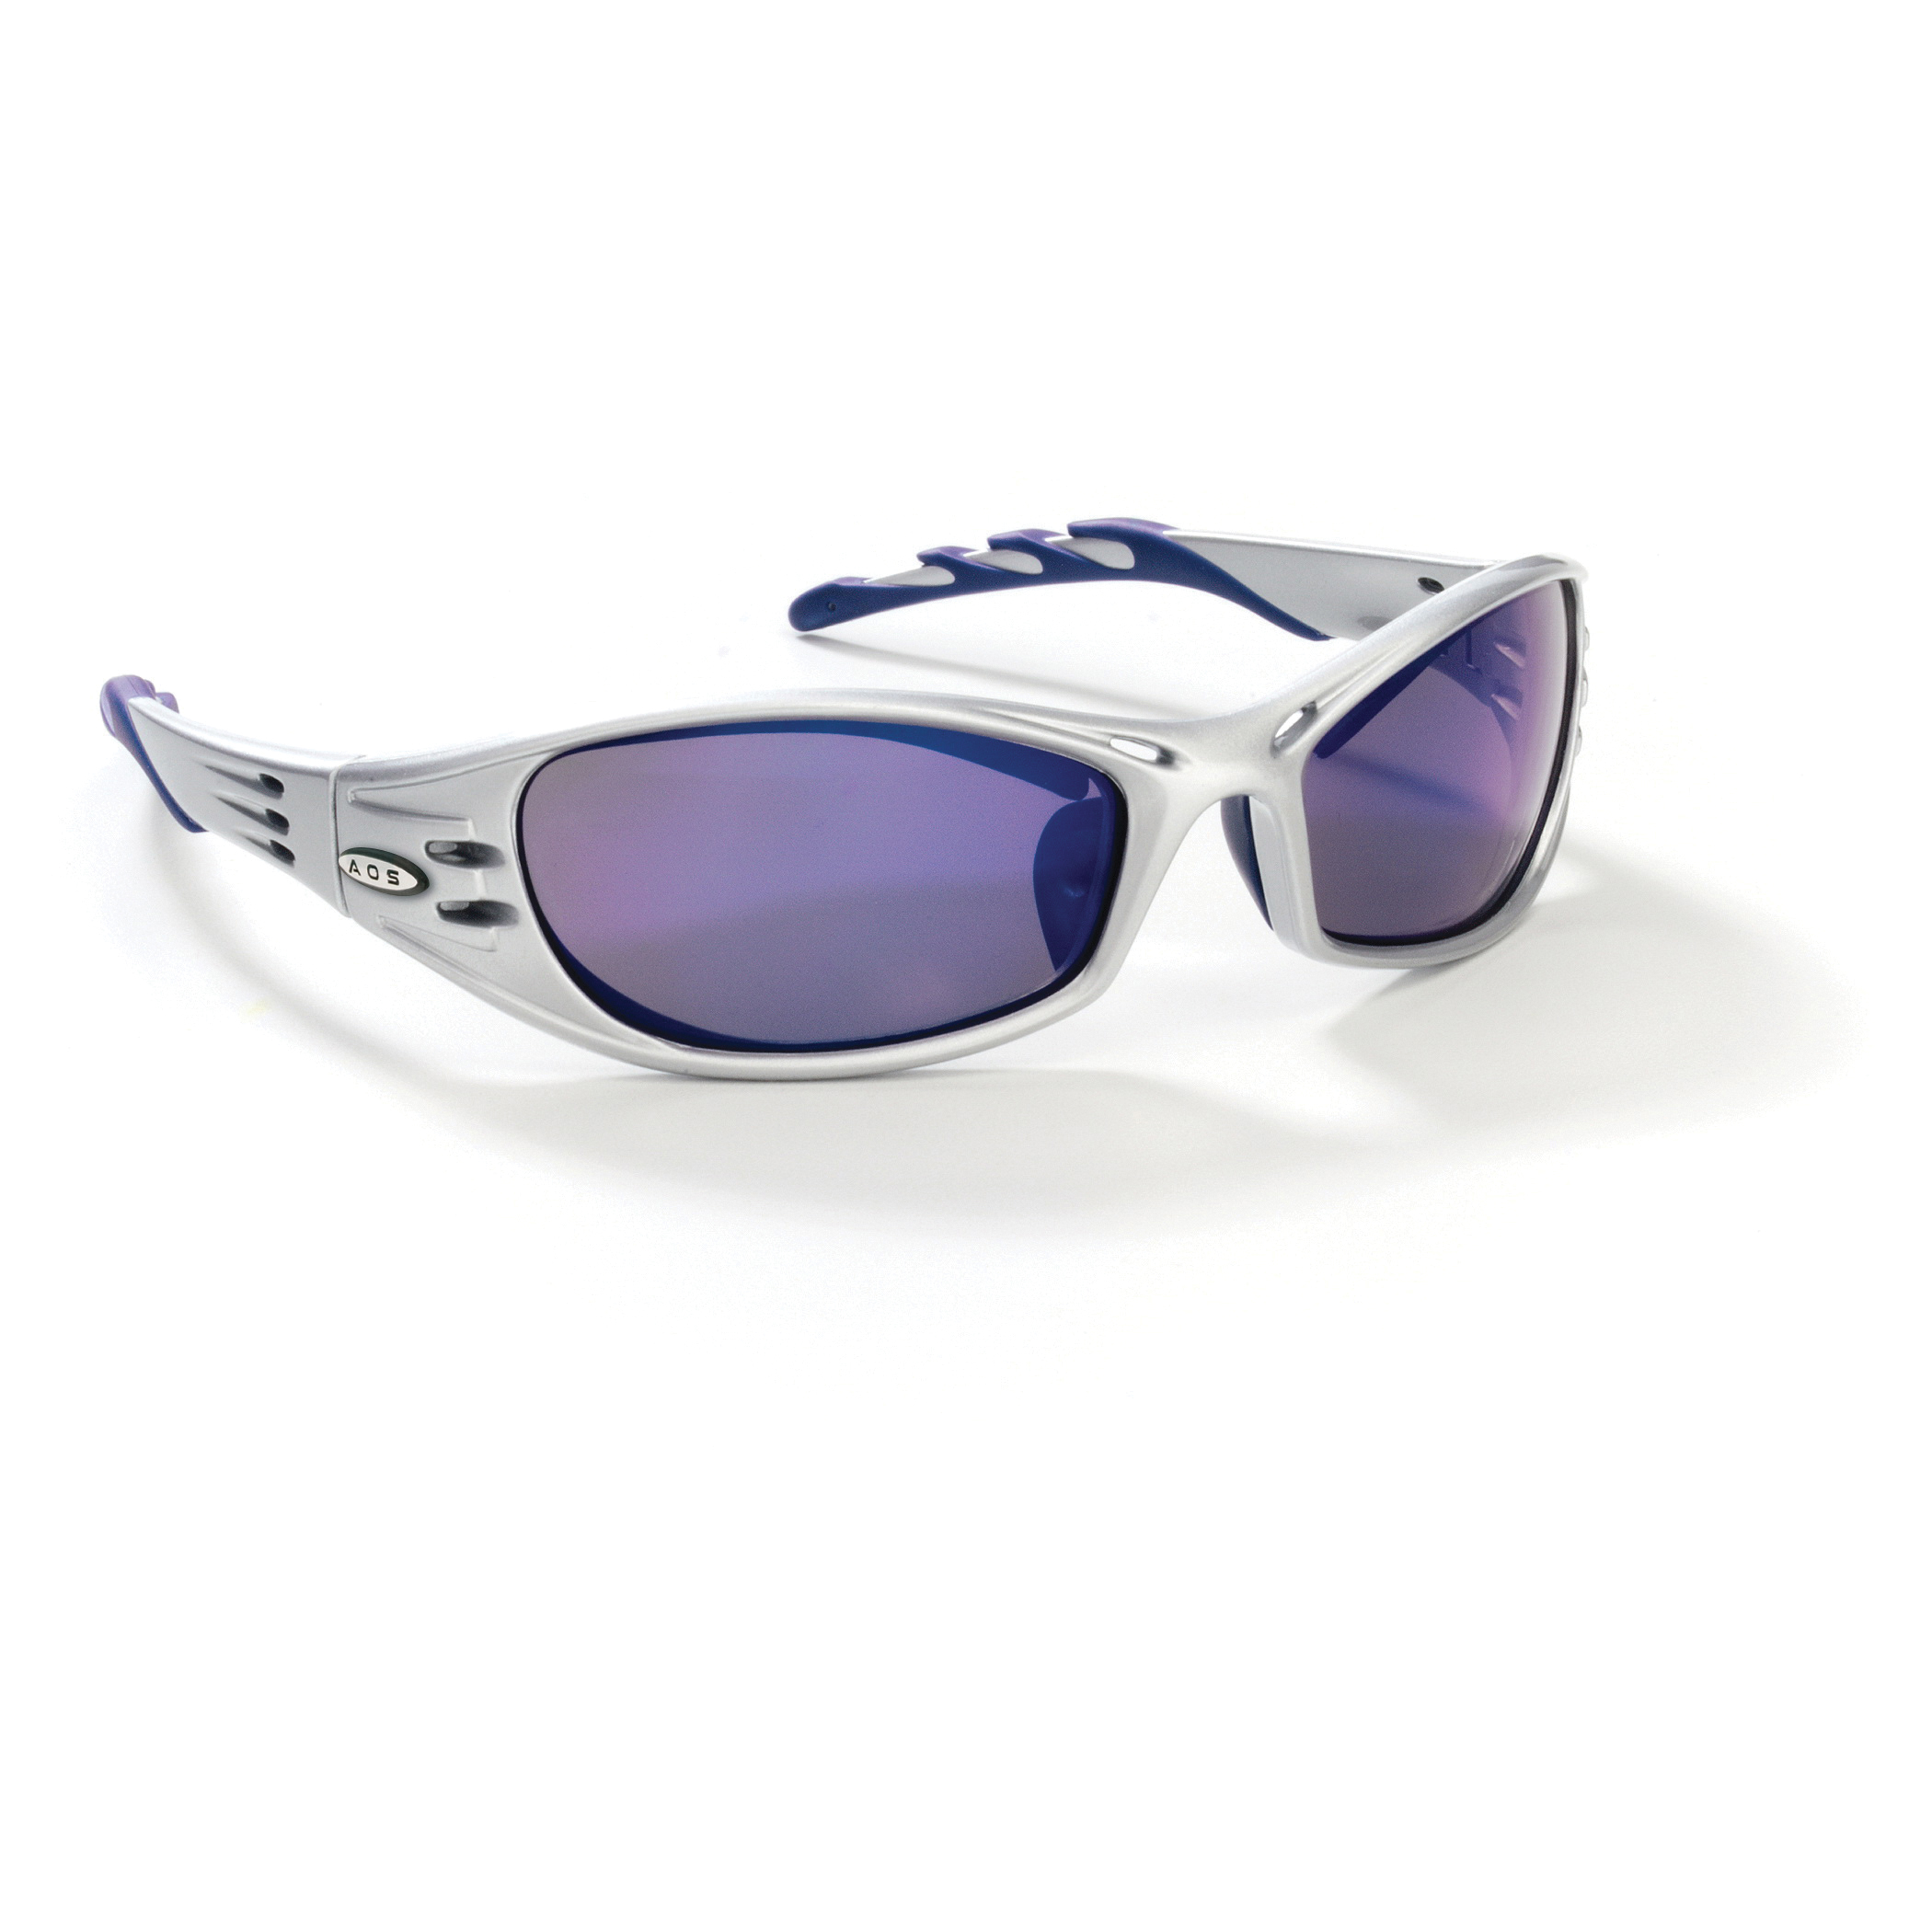 3M™ Fuel™ 078371-62148 11641-00000-10 Premium Protective Eyewear, Anti-Scratch Blue Mirror Lens, Full Framed Silver Plastic Frame, Polycarbonate Lens, Specifications Met: ANSI Z87.1-2015